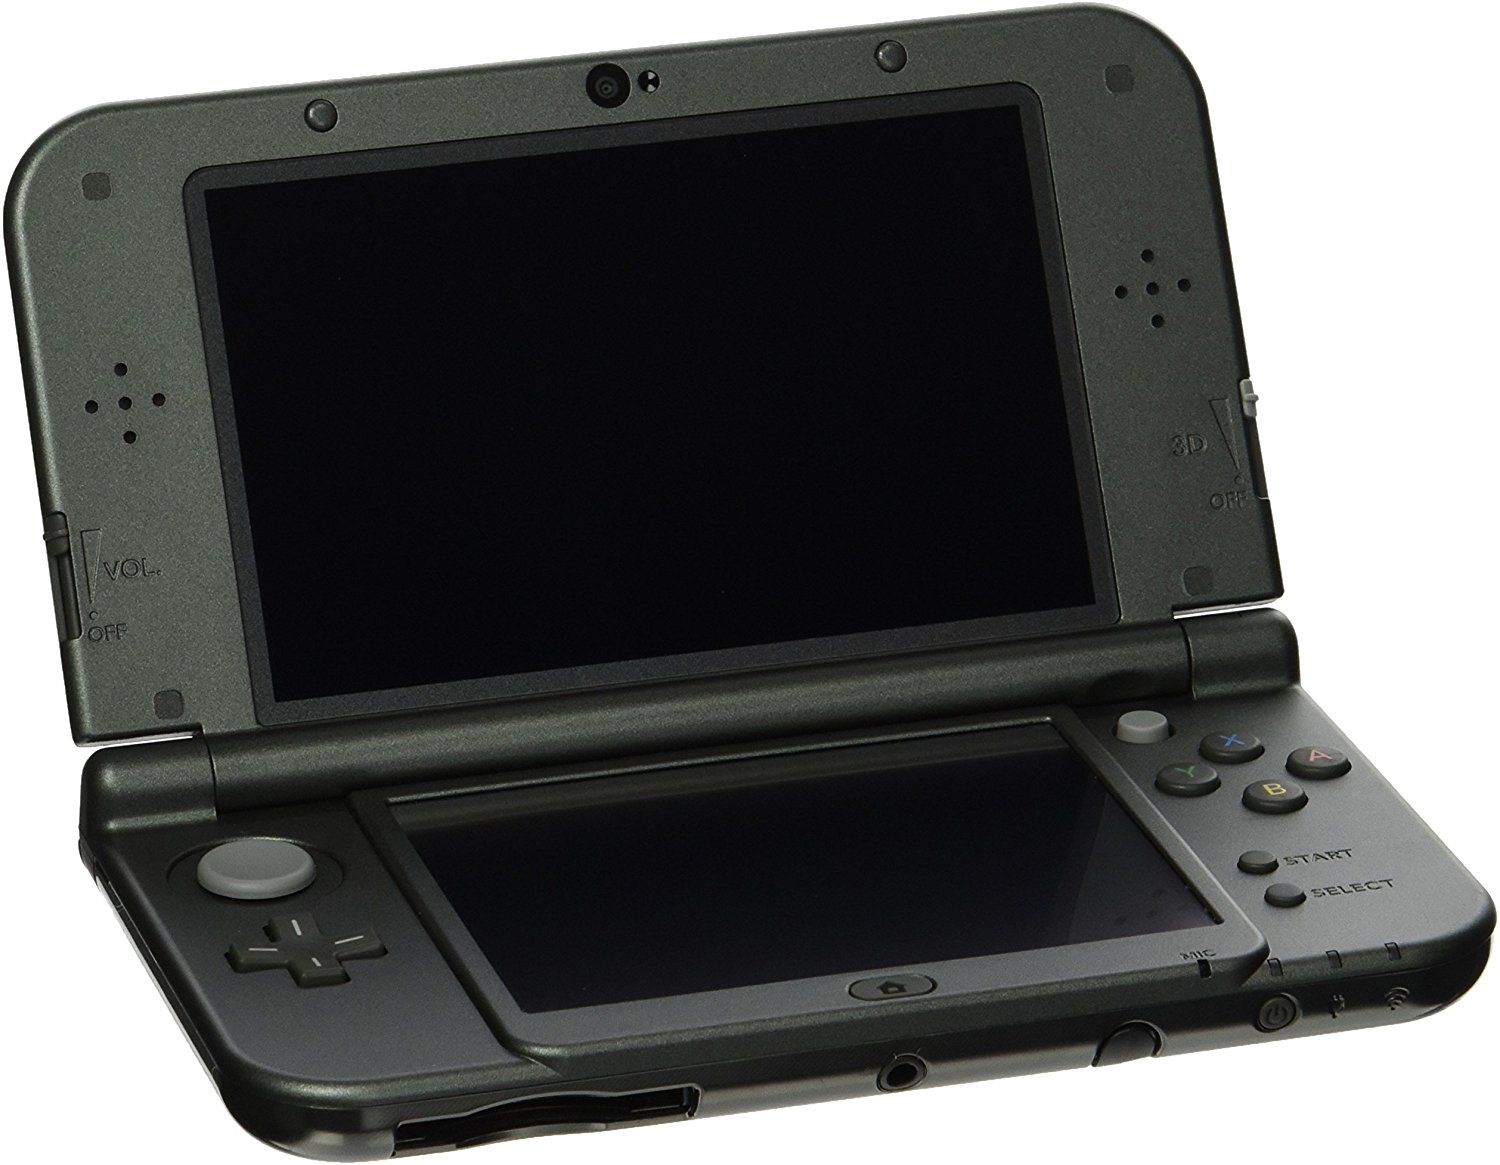 New Nintendo 3DS XL Black- With 4 3DS games (Rent to Own)